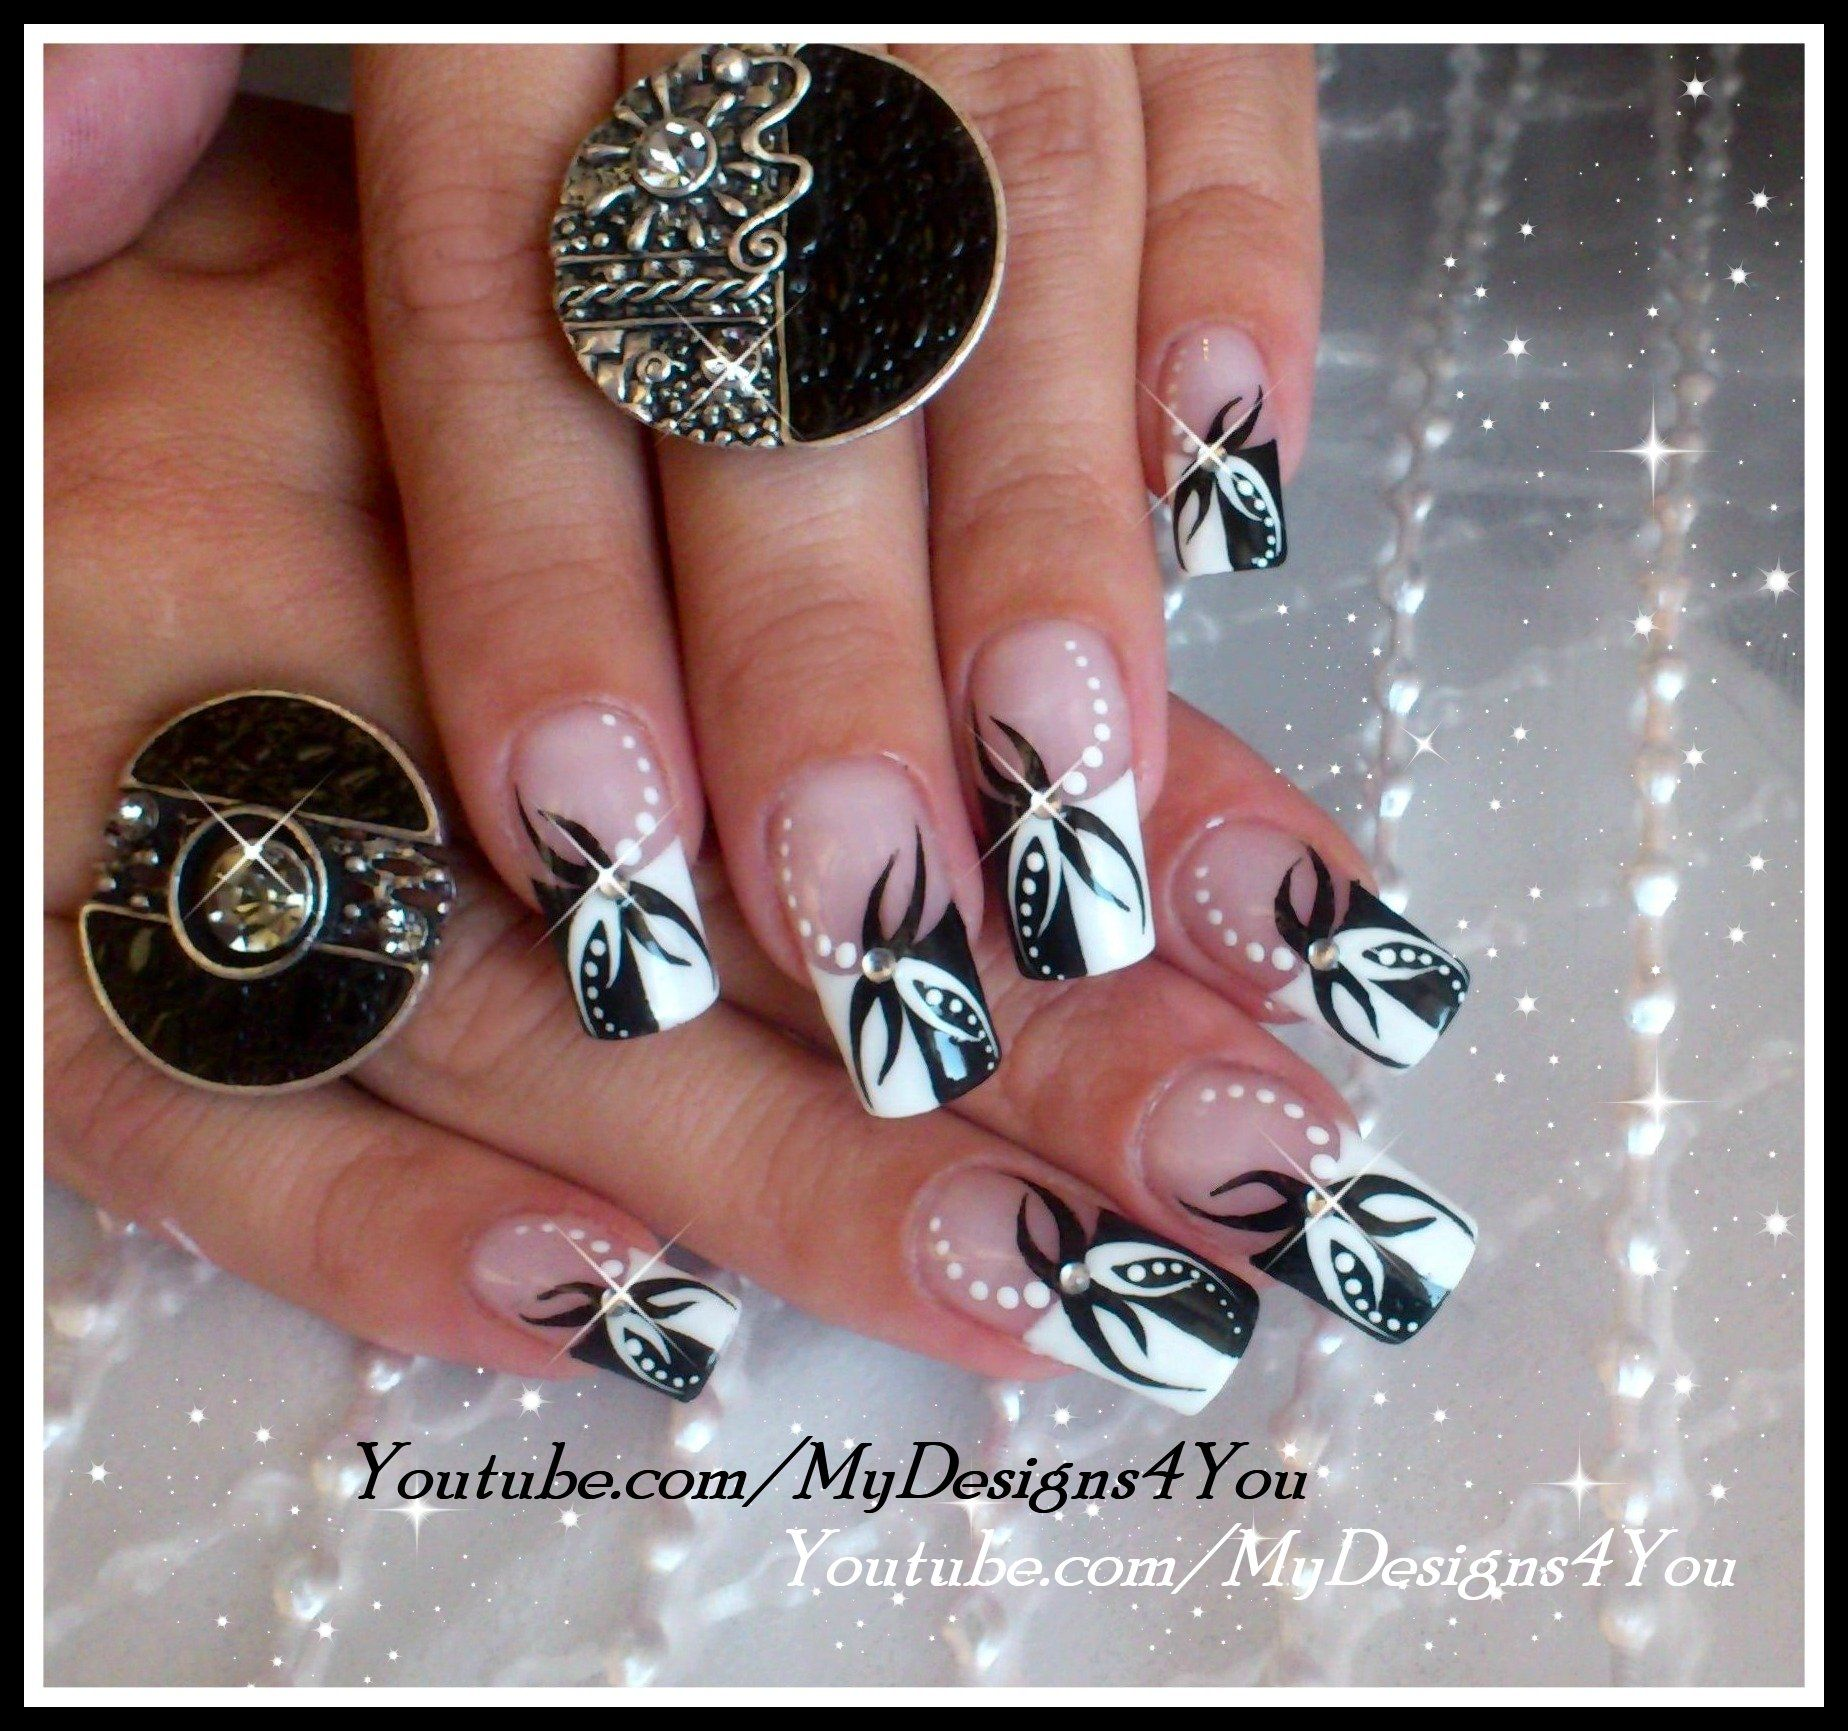 BLACK AND WHITE ABSTRACT NAIL ART DESIGN TUTORIAL by MyDesigns4You ...